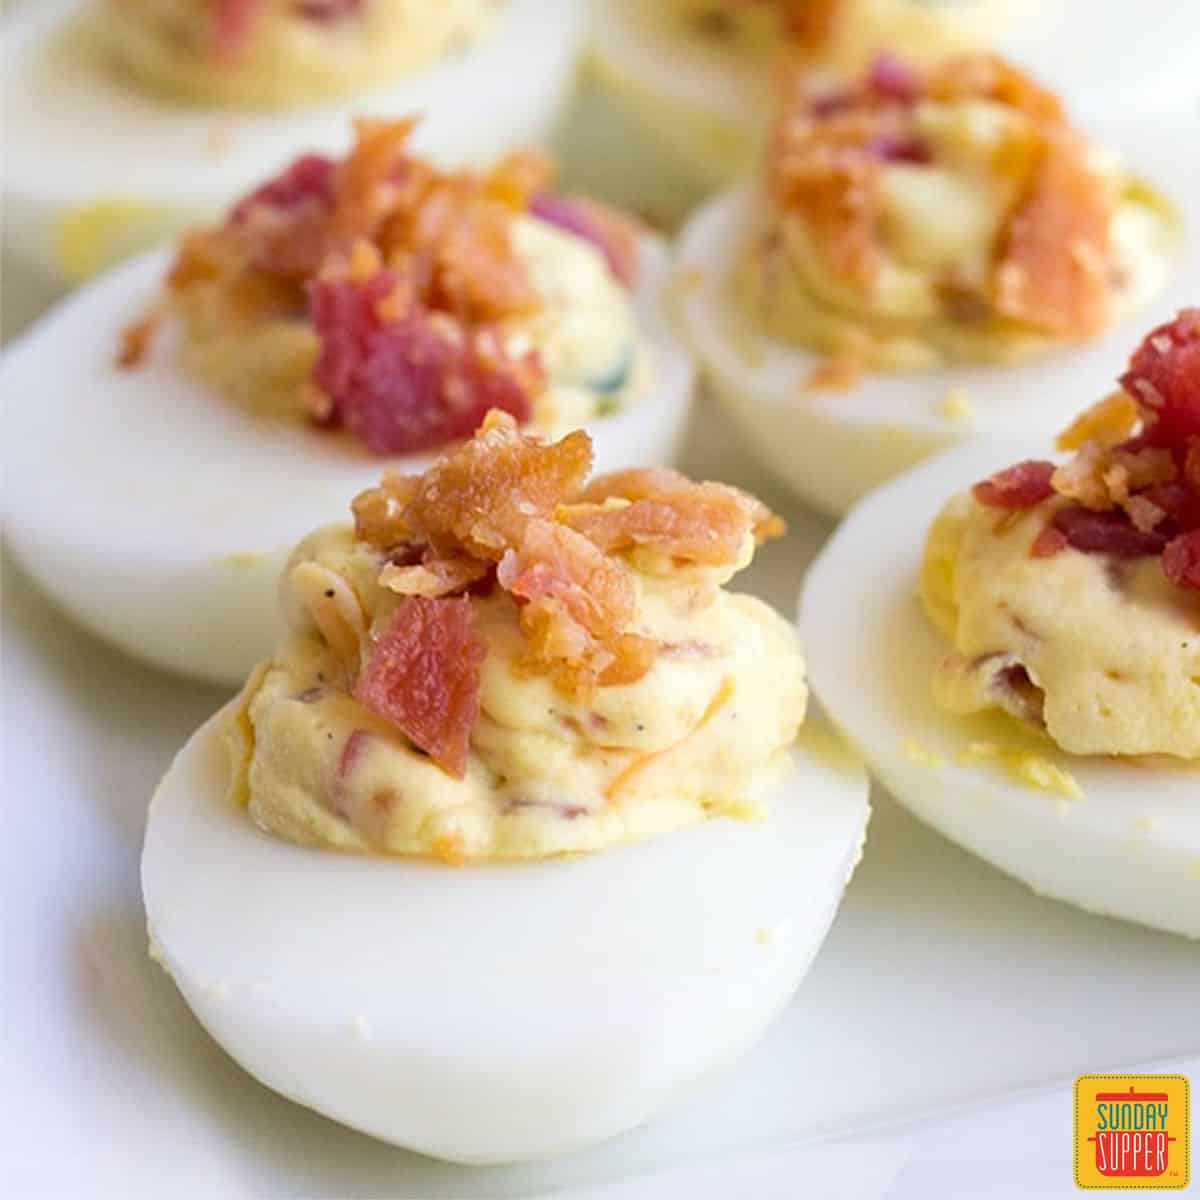 Four jalapeno deviled eggs topped with bacon